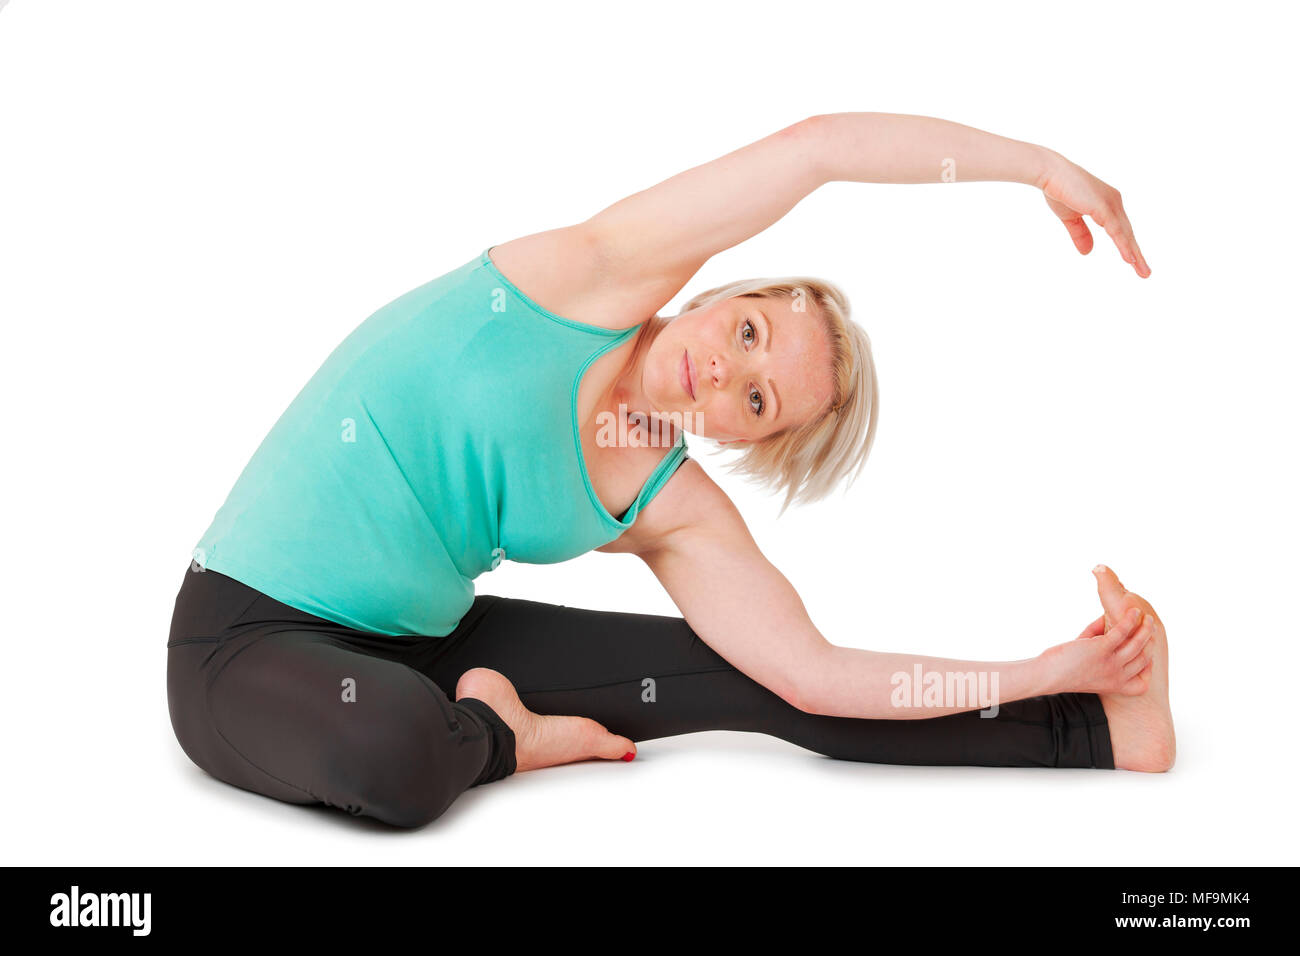 Full body view of a young blond woman doing yoga exercises in front of white background with gentle shadow. - Stock Image